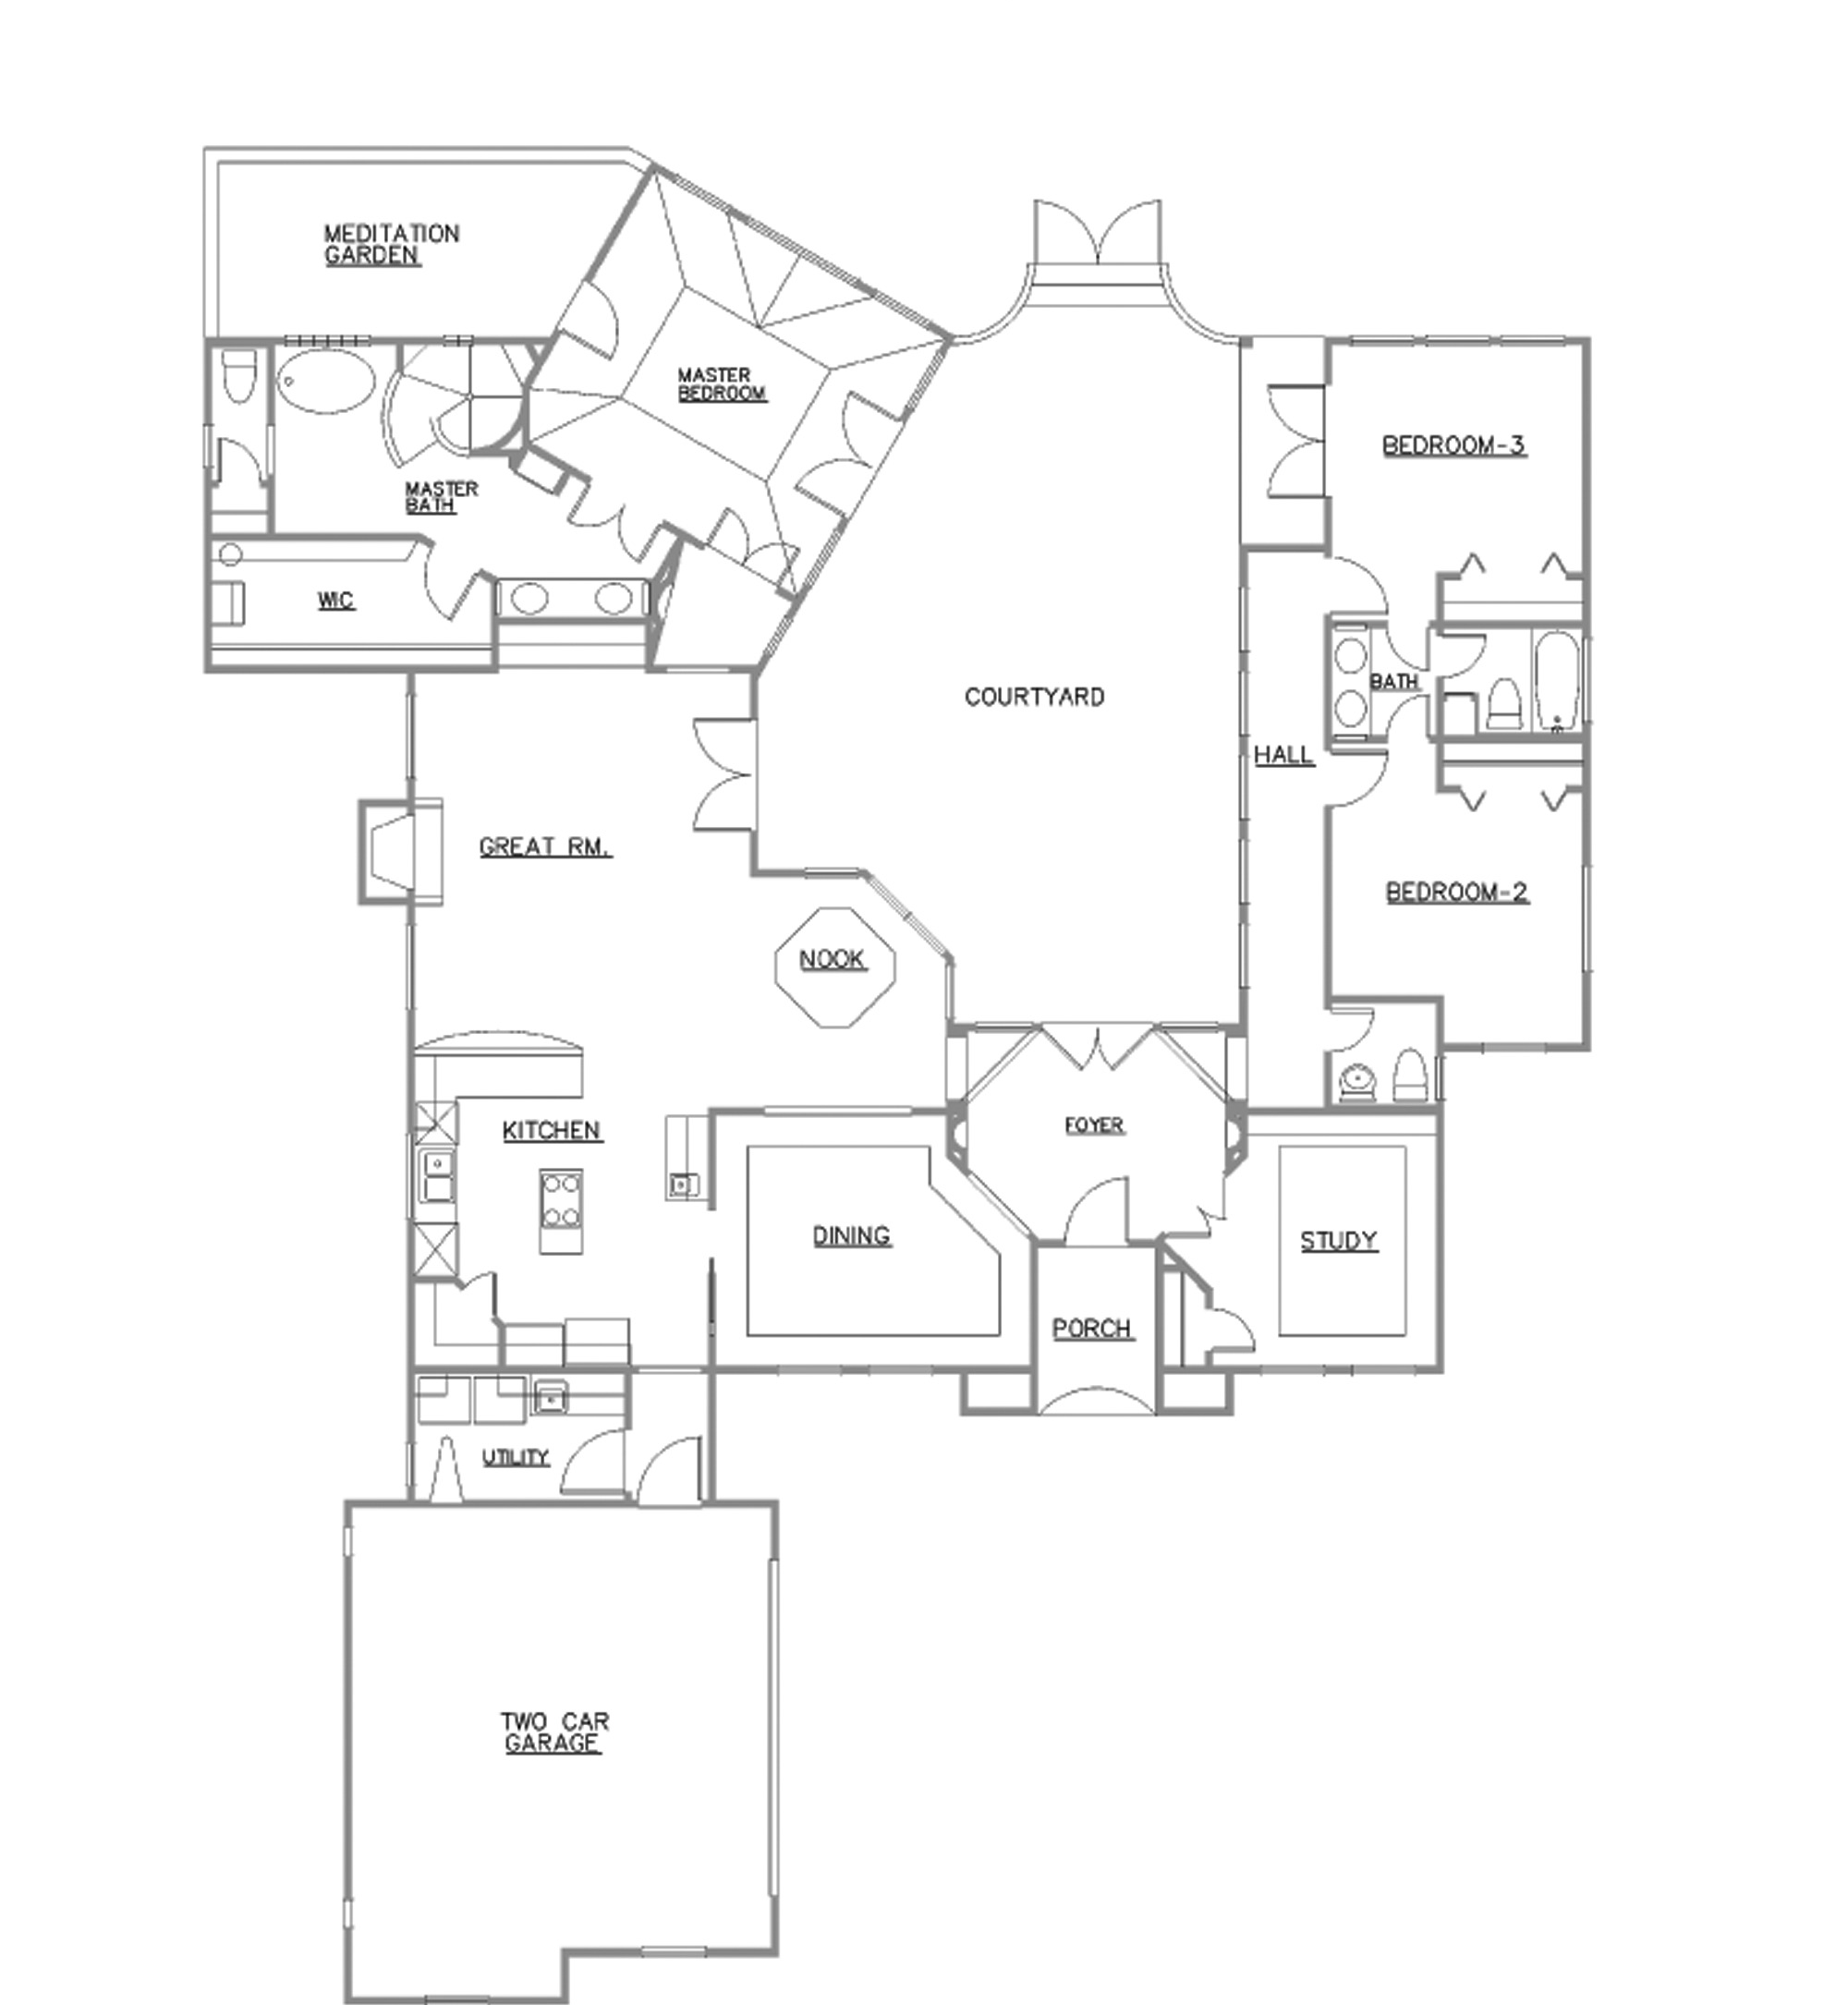 Custom home plan 57 images custom home plan design for Custom home floor plans